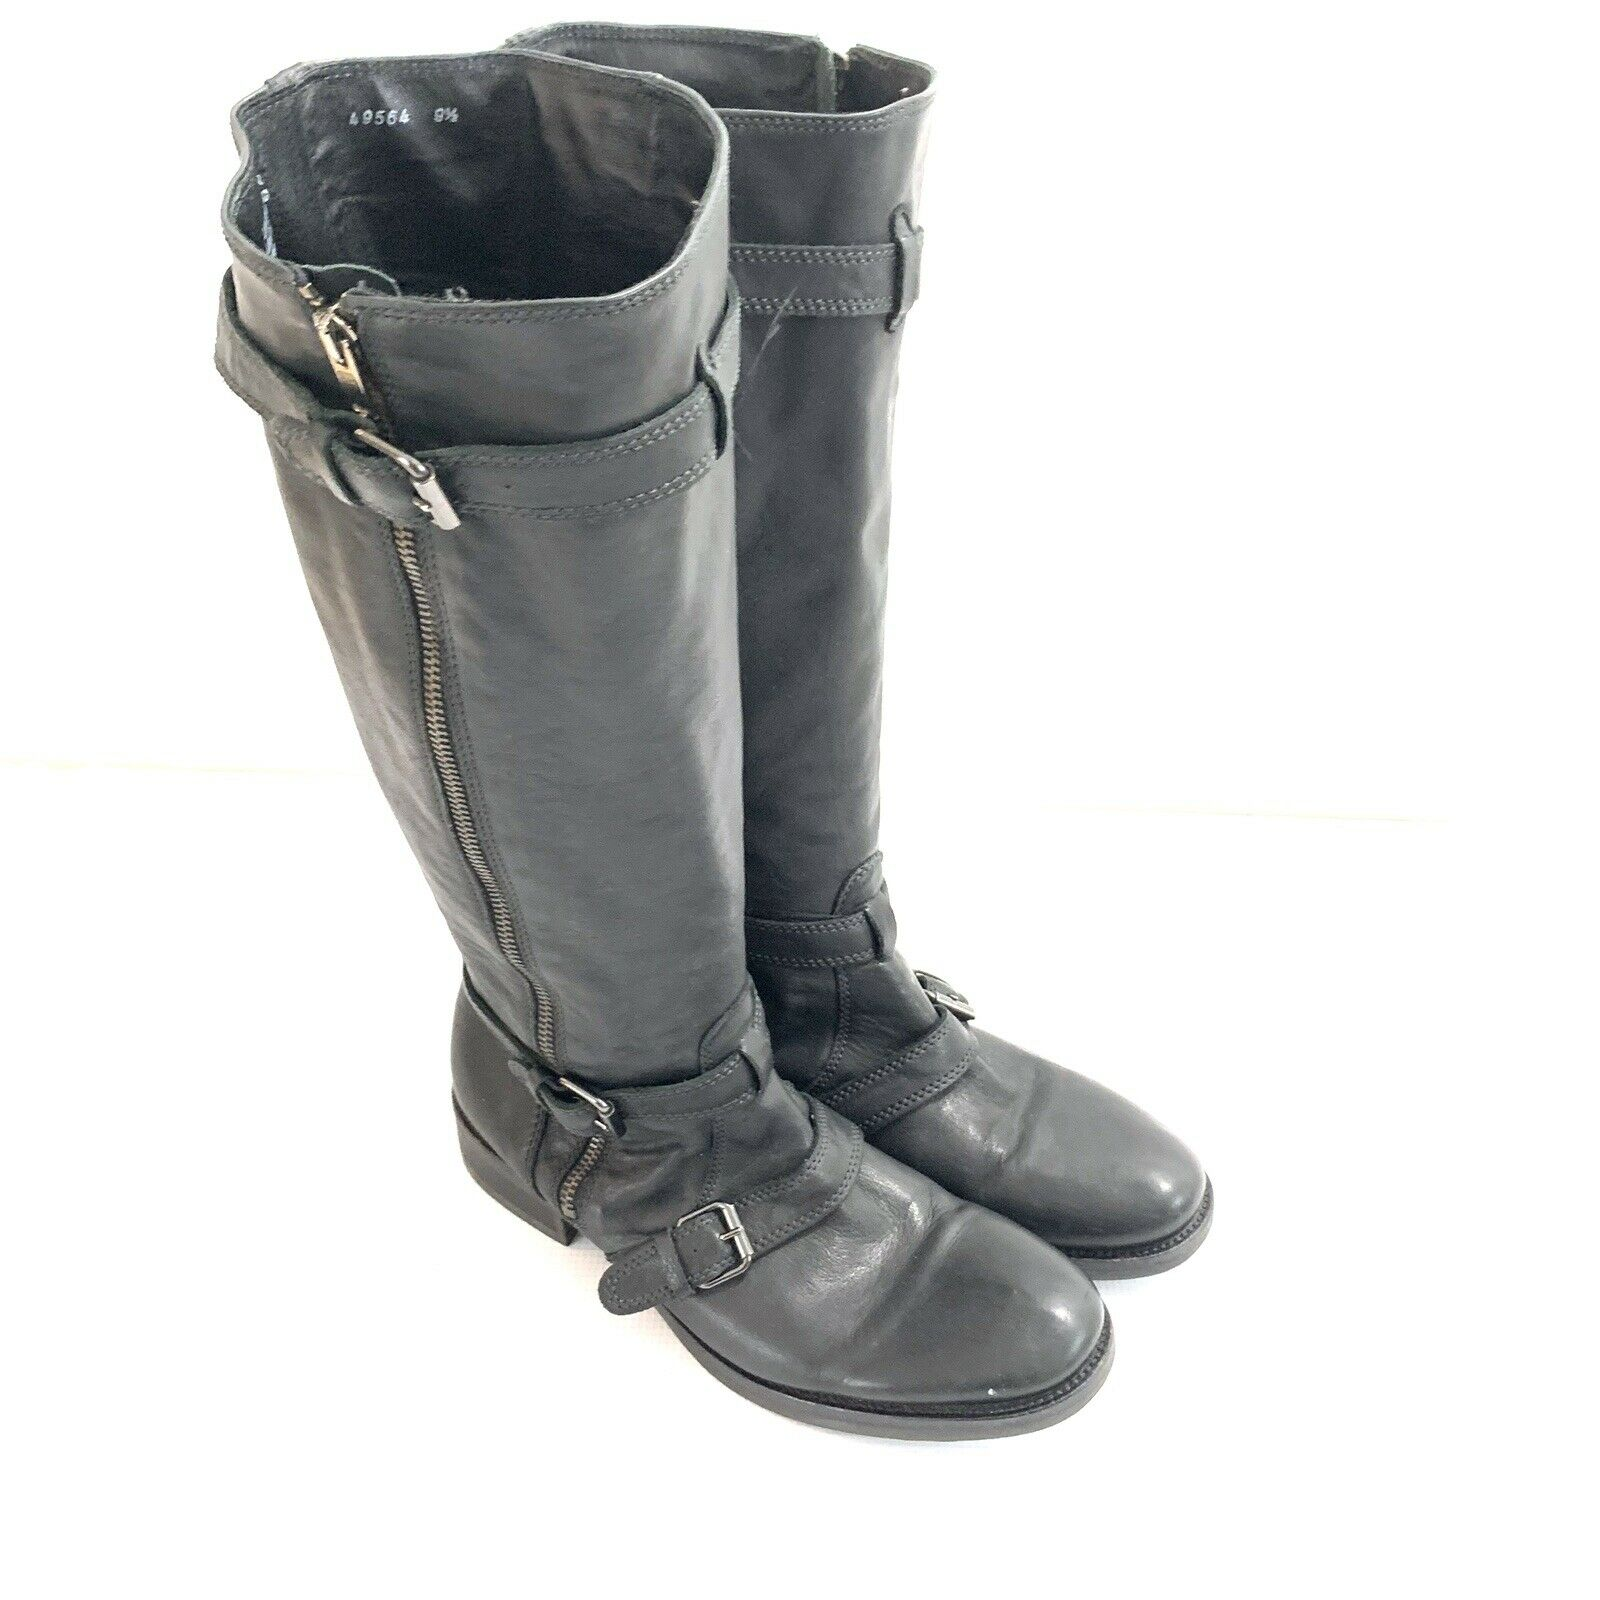 J. Crew Miller Motorcycle Boots with extended Calf Black Women Sz 9.5